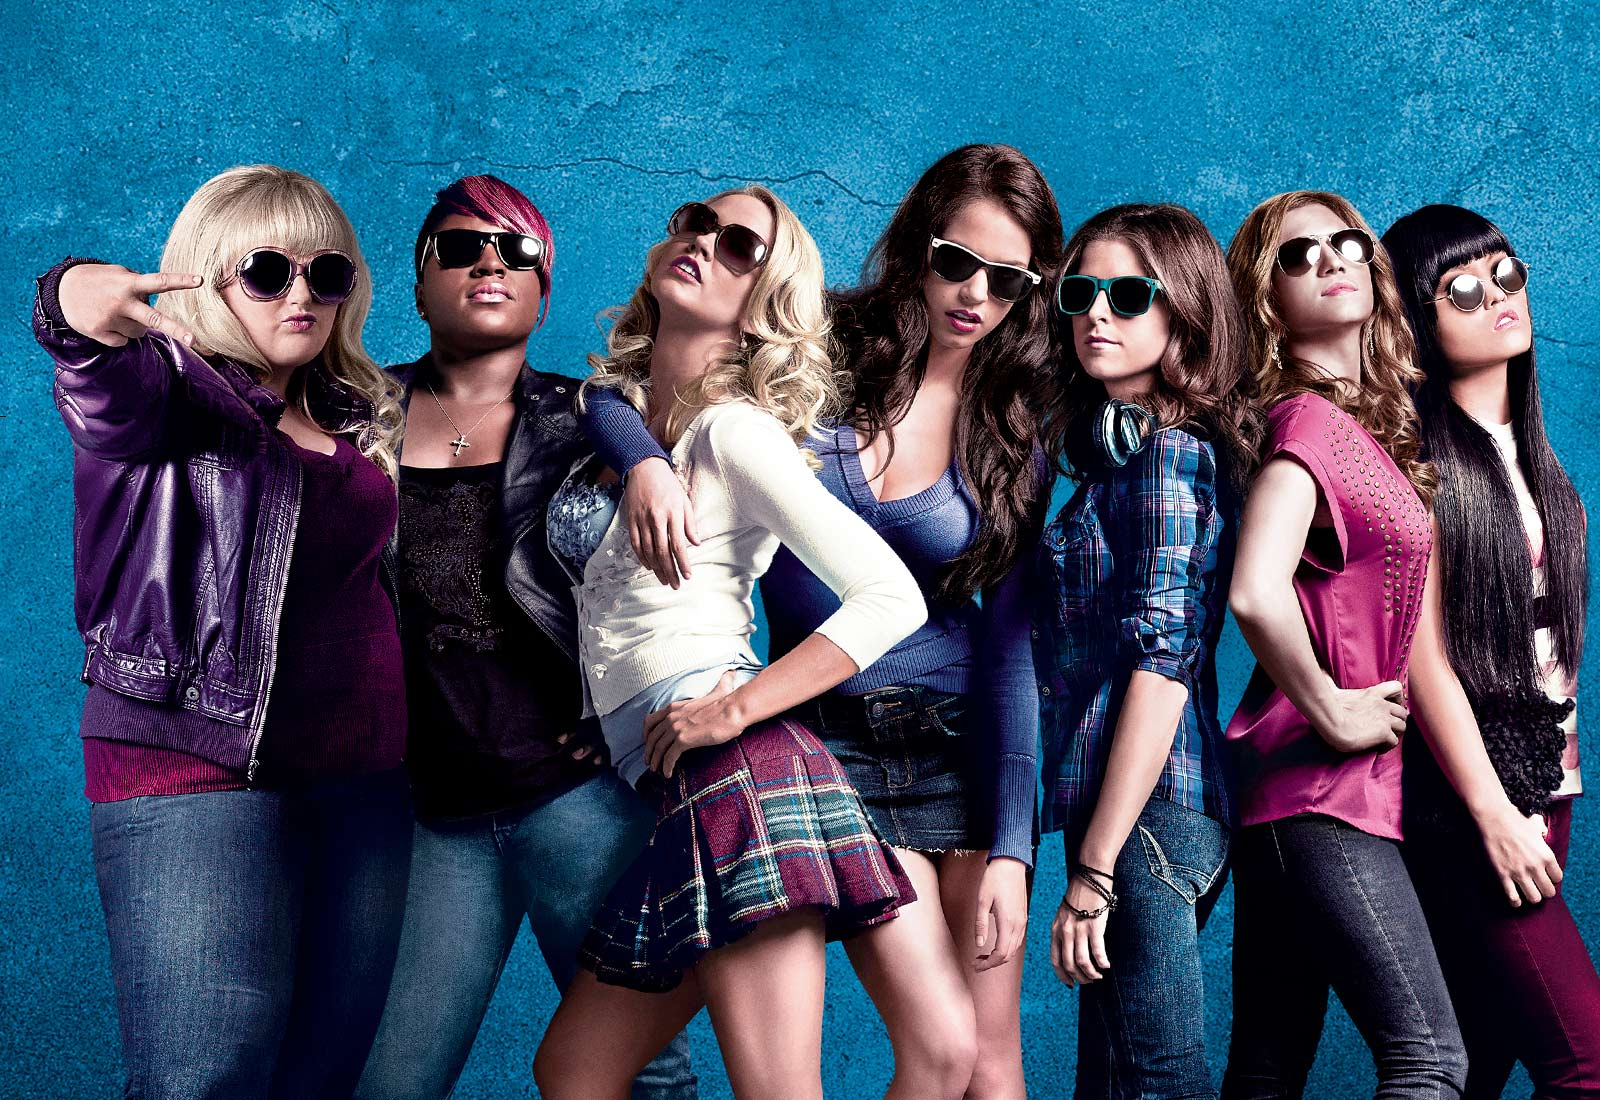 pitch perfect streaming free